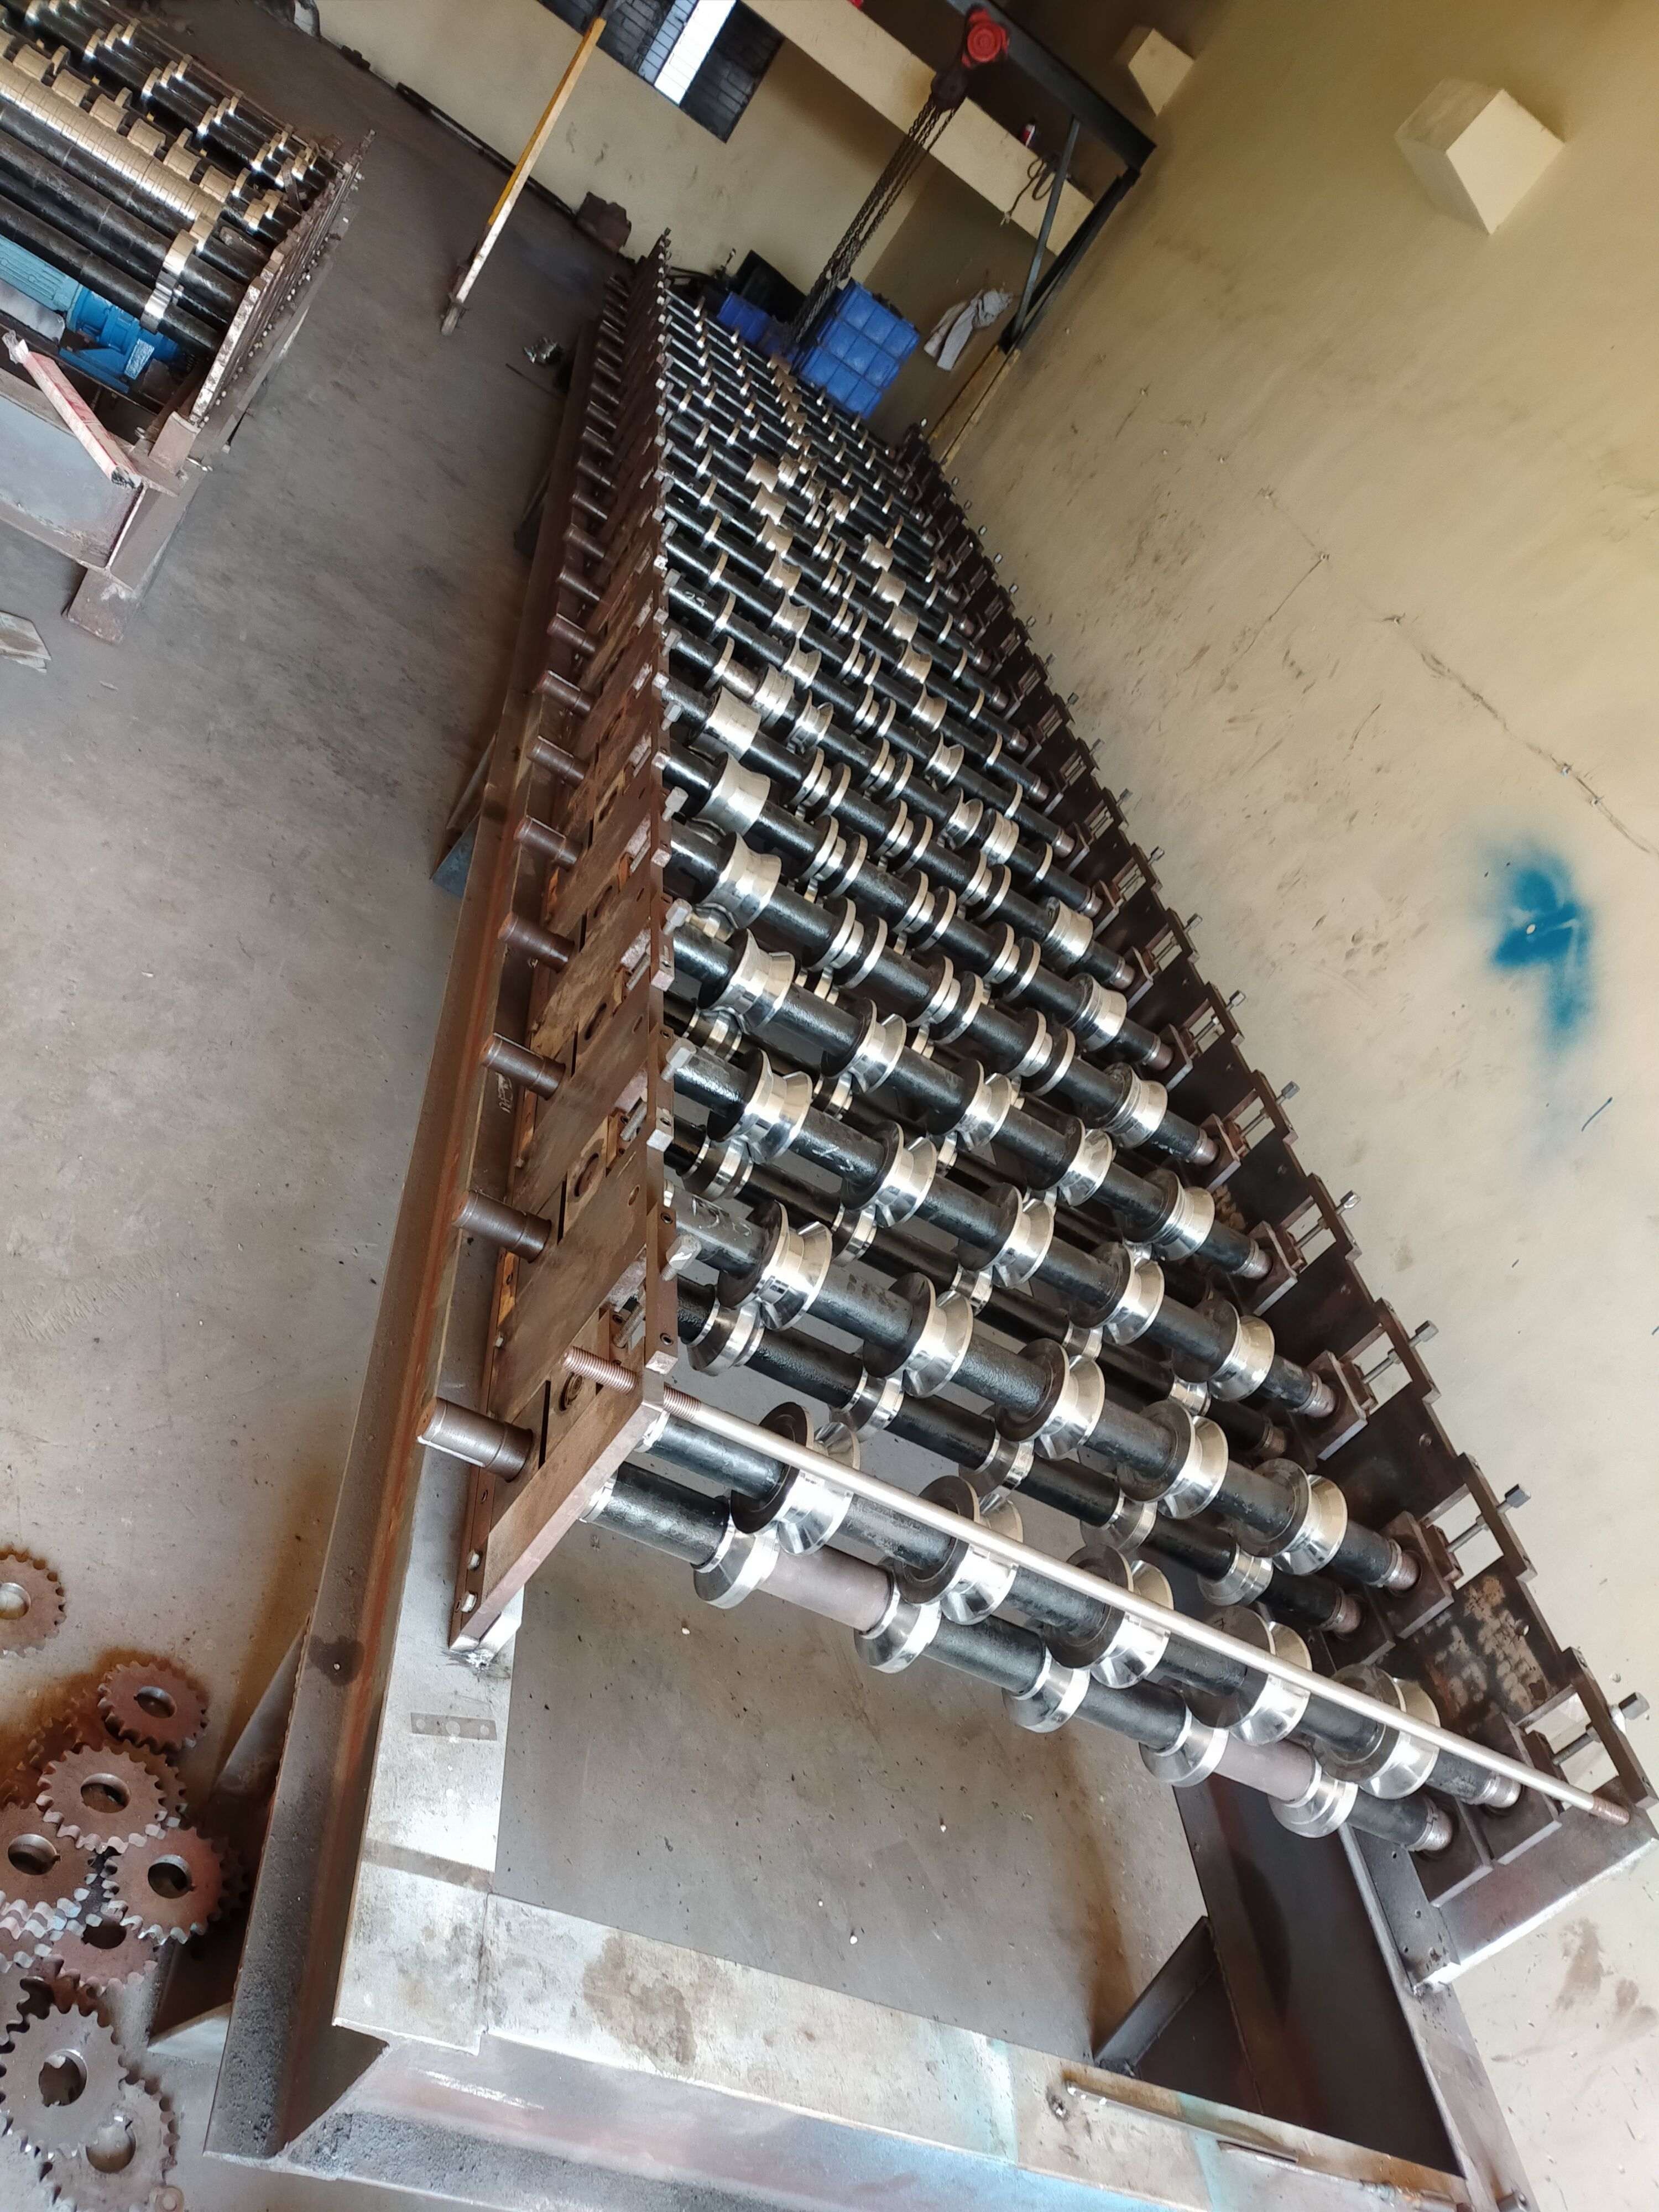 Roofingtilemakingmachine We Offering Finest Quality Roof Tile Making Machine To Clients This Is The Fastest Machine On The Mark Making Machine Roof Tiles Tiles